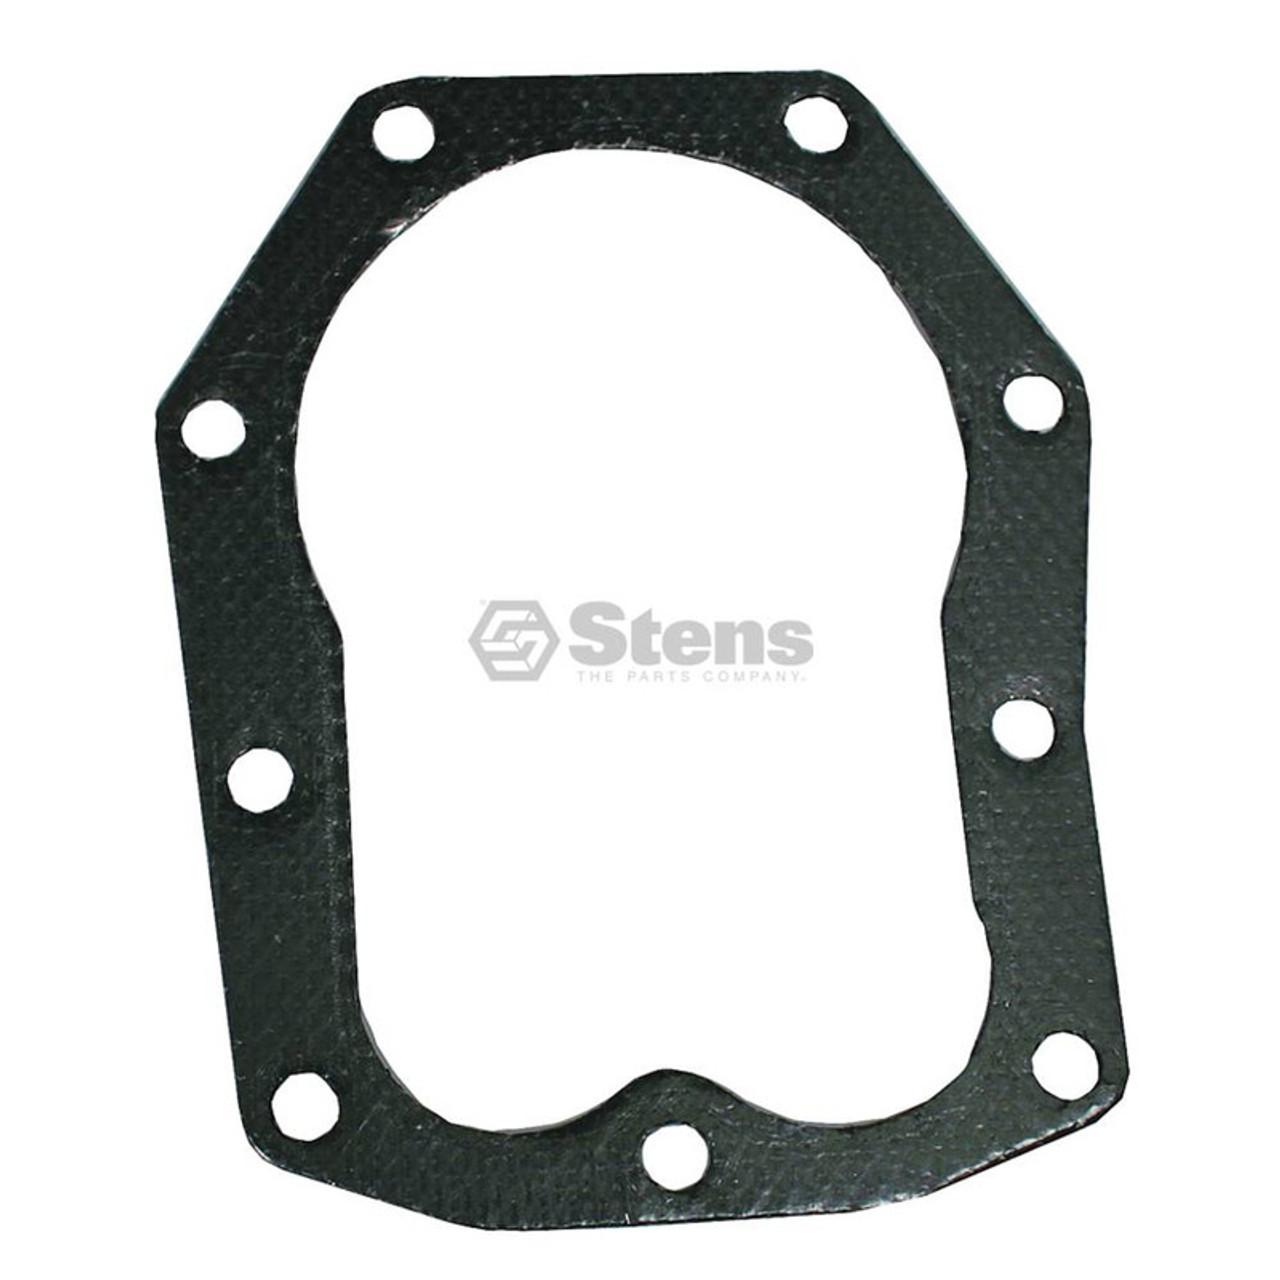 Head Gasket for Briggs and Stratton 271075, 271707, 271866, 271866S, 4125 & 220400 to 222400, 252400 to 252700, 257700, 280700 to 286700